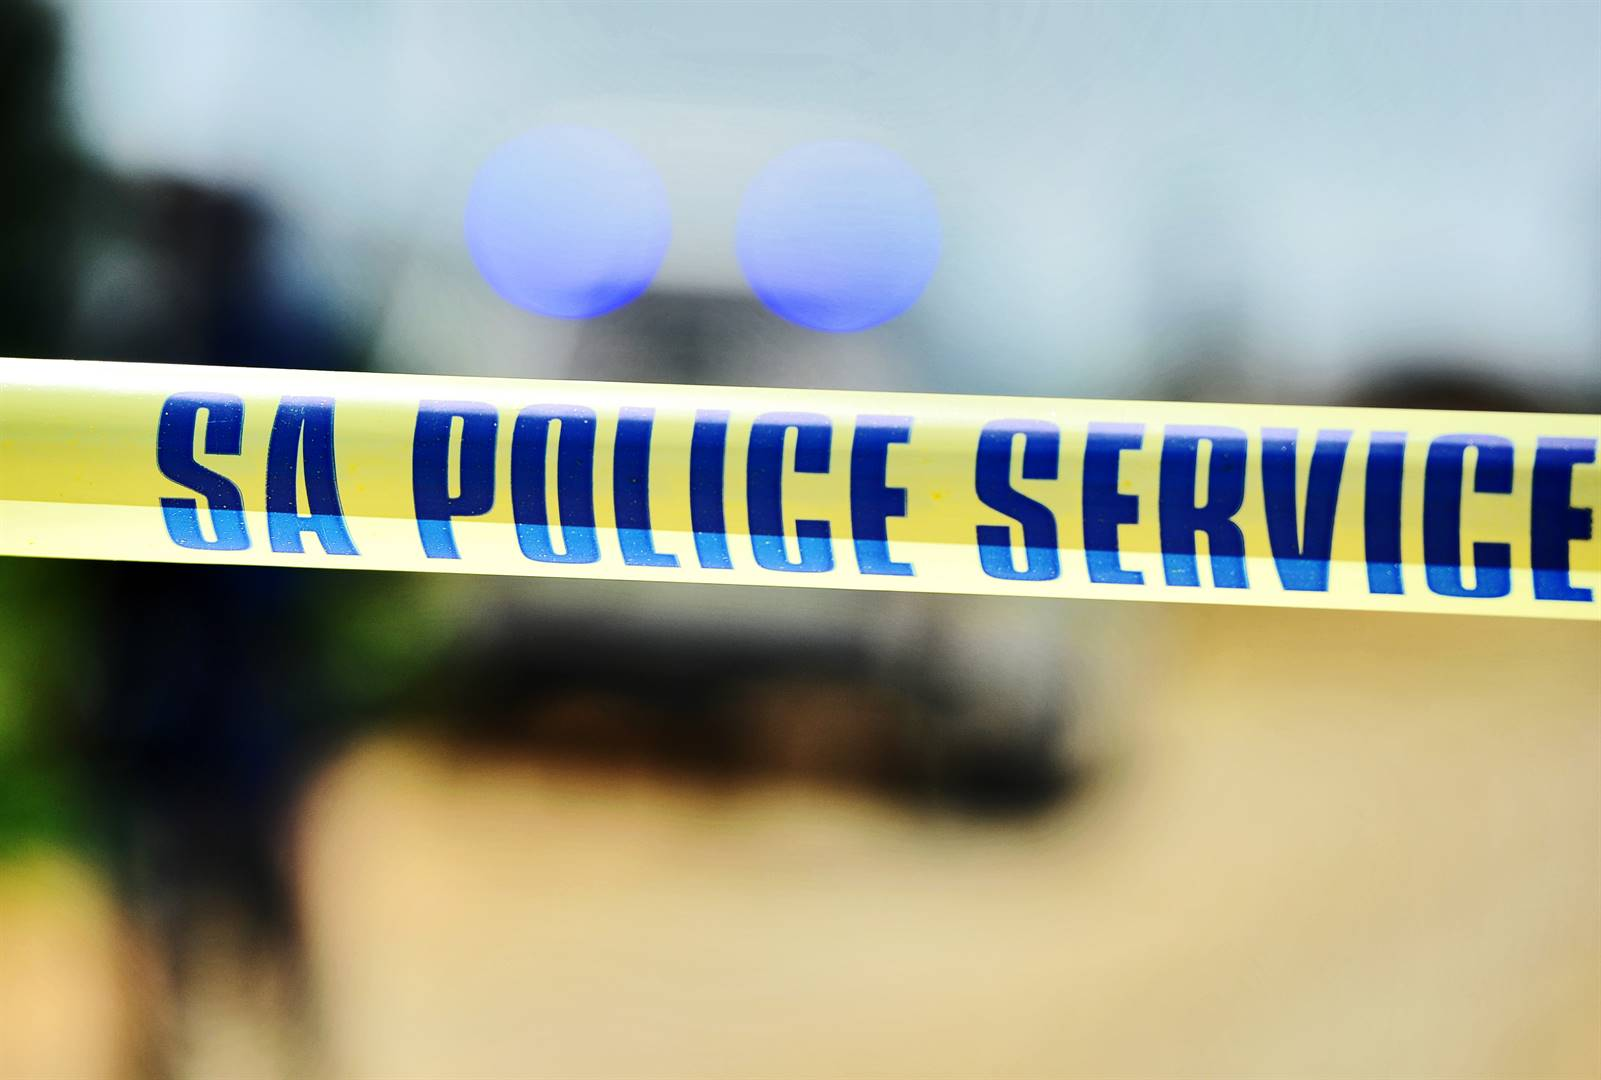 NFP councillor candidate gunned down in Nongoma, KZN - News24